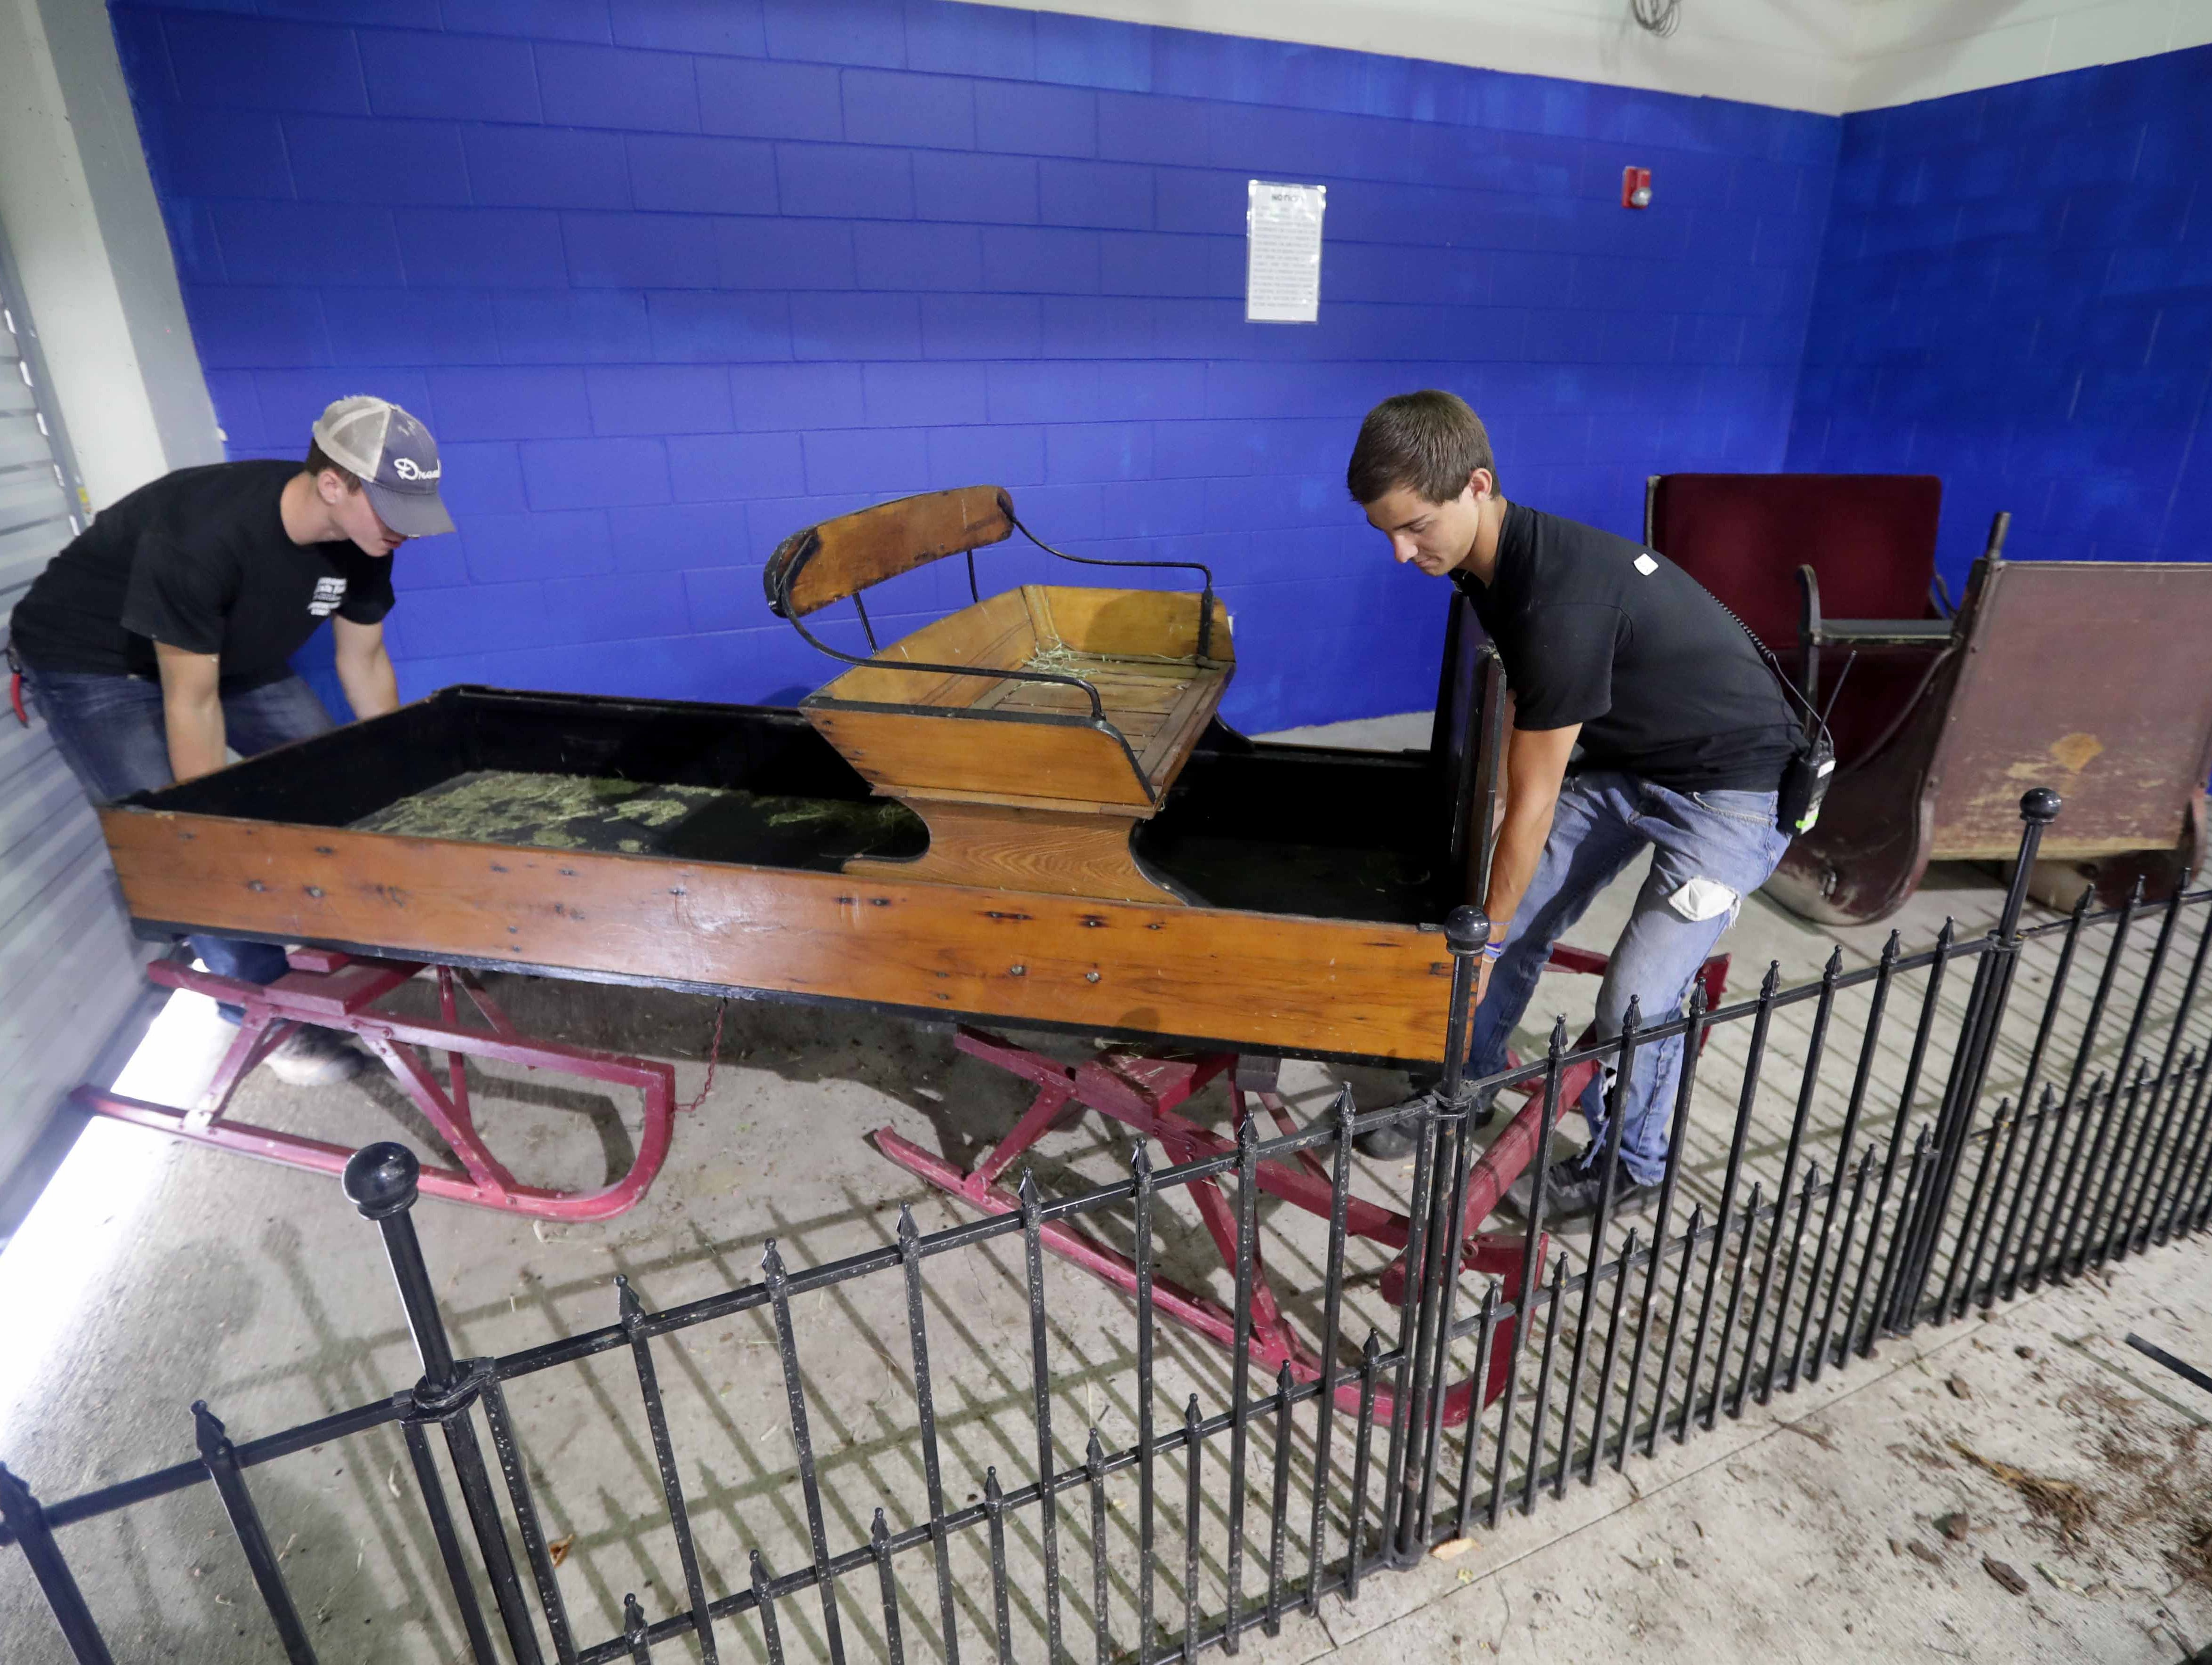 Collin Sauer (left) and Rylie Waeffler, both Wisconsin State Fair agriculture assistants, work on moving an antique sleigh that was at one time pulled by horses inside the newly expanded Neighborhood Corral where horses are exhibited. Work was being done in preparation for the opening of the Wisconsin State Fair at State Fair Park on Wednesday, August 1, 2018. The fair, in West Allis, runs from Thursday, August 2 to Sunday, August 12. -  Photo by Mike De Sisti / Milwaukee Journal Sentinel